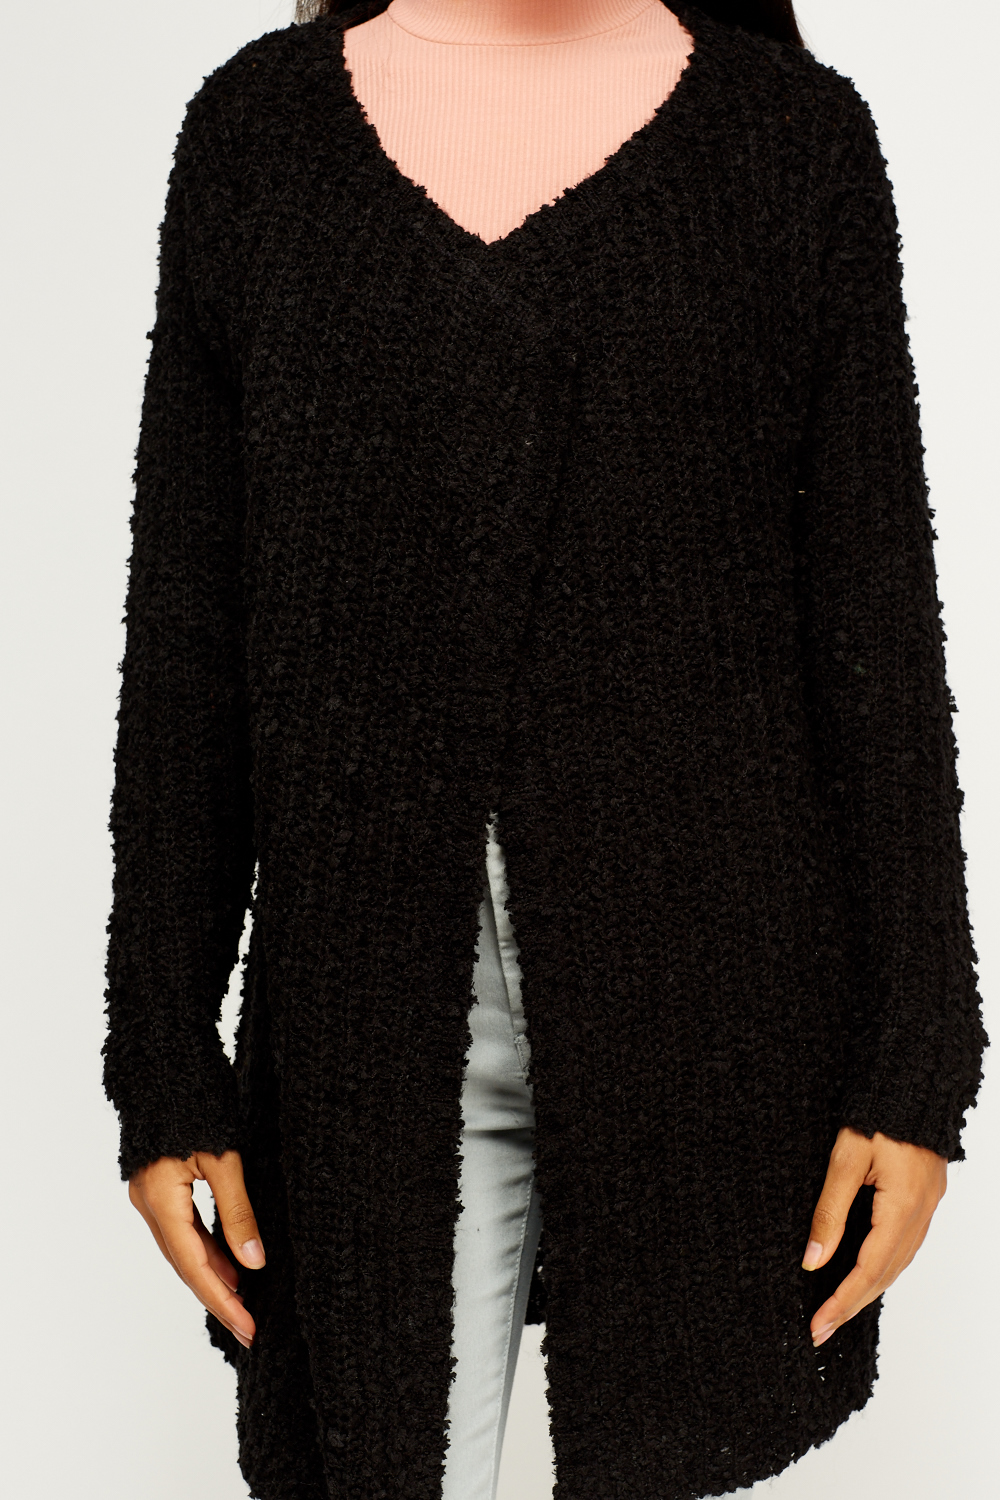 Bobble Knit Open Front Cardigan - Just ?5